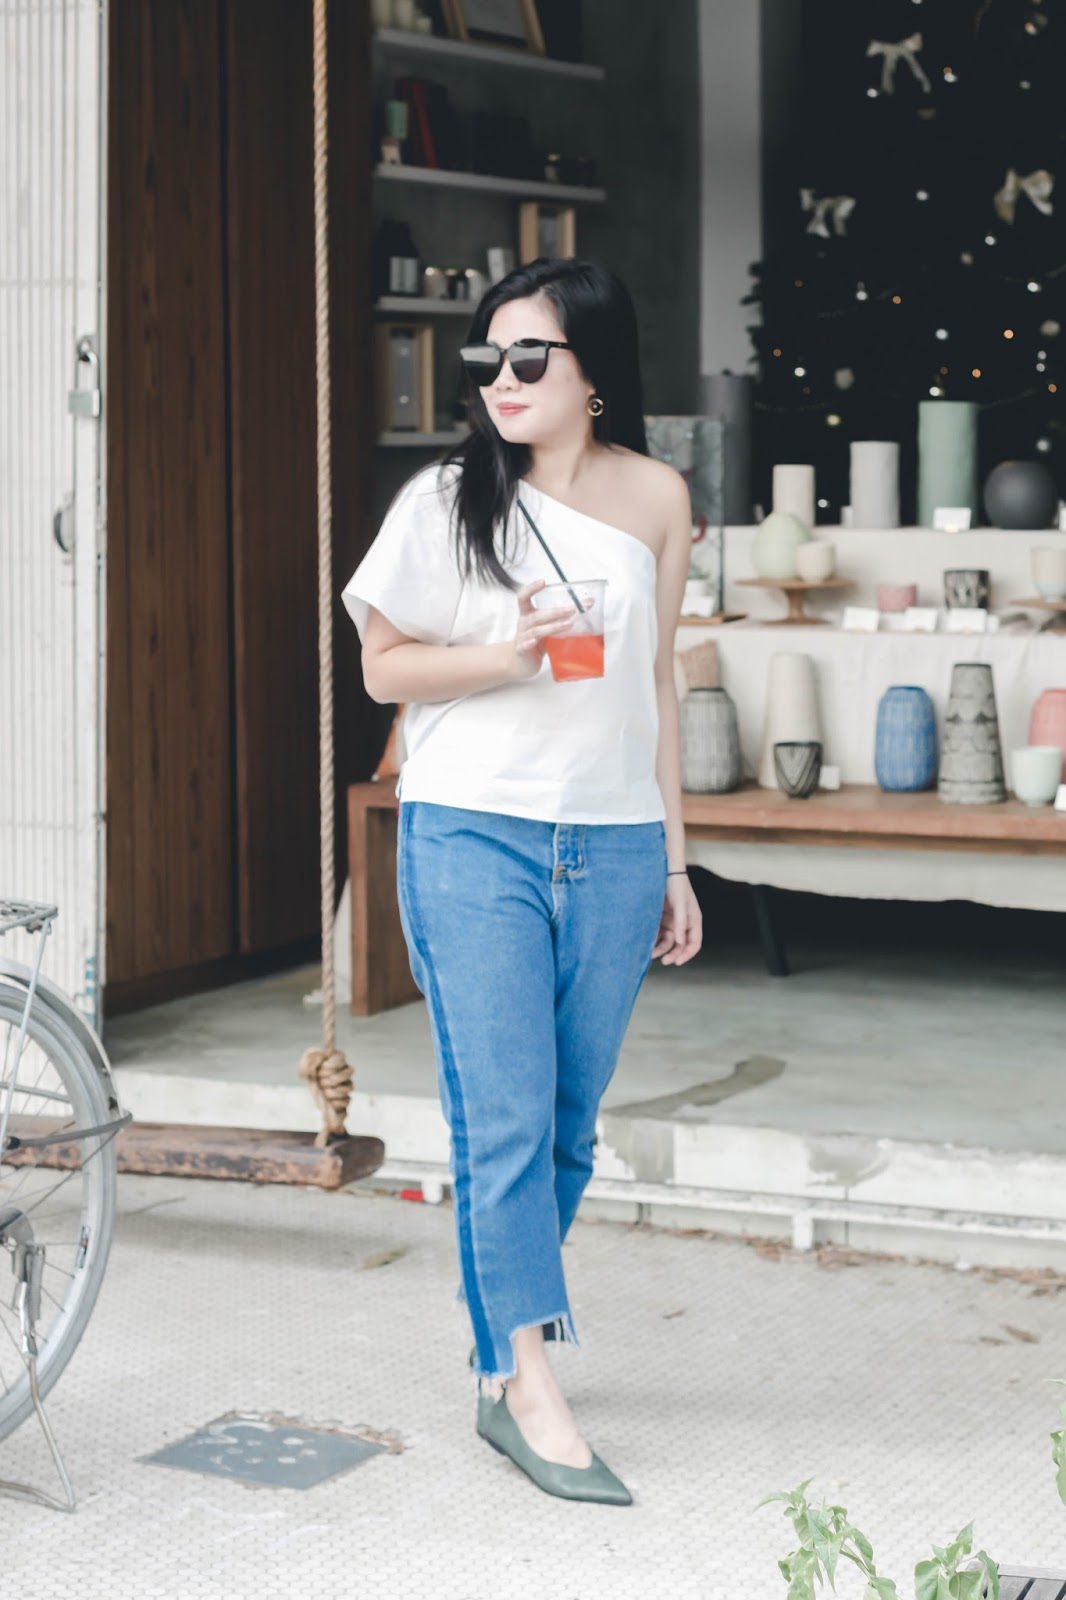 singapore blogger stylist fashion look book street style photography summer denim ootd outfit wear